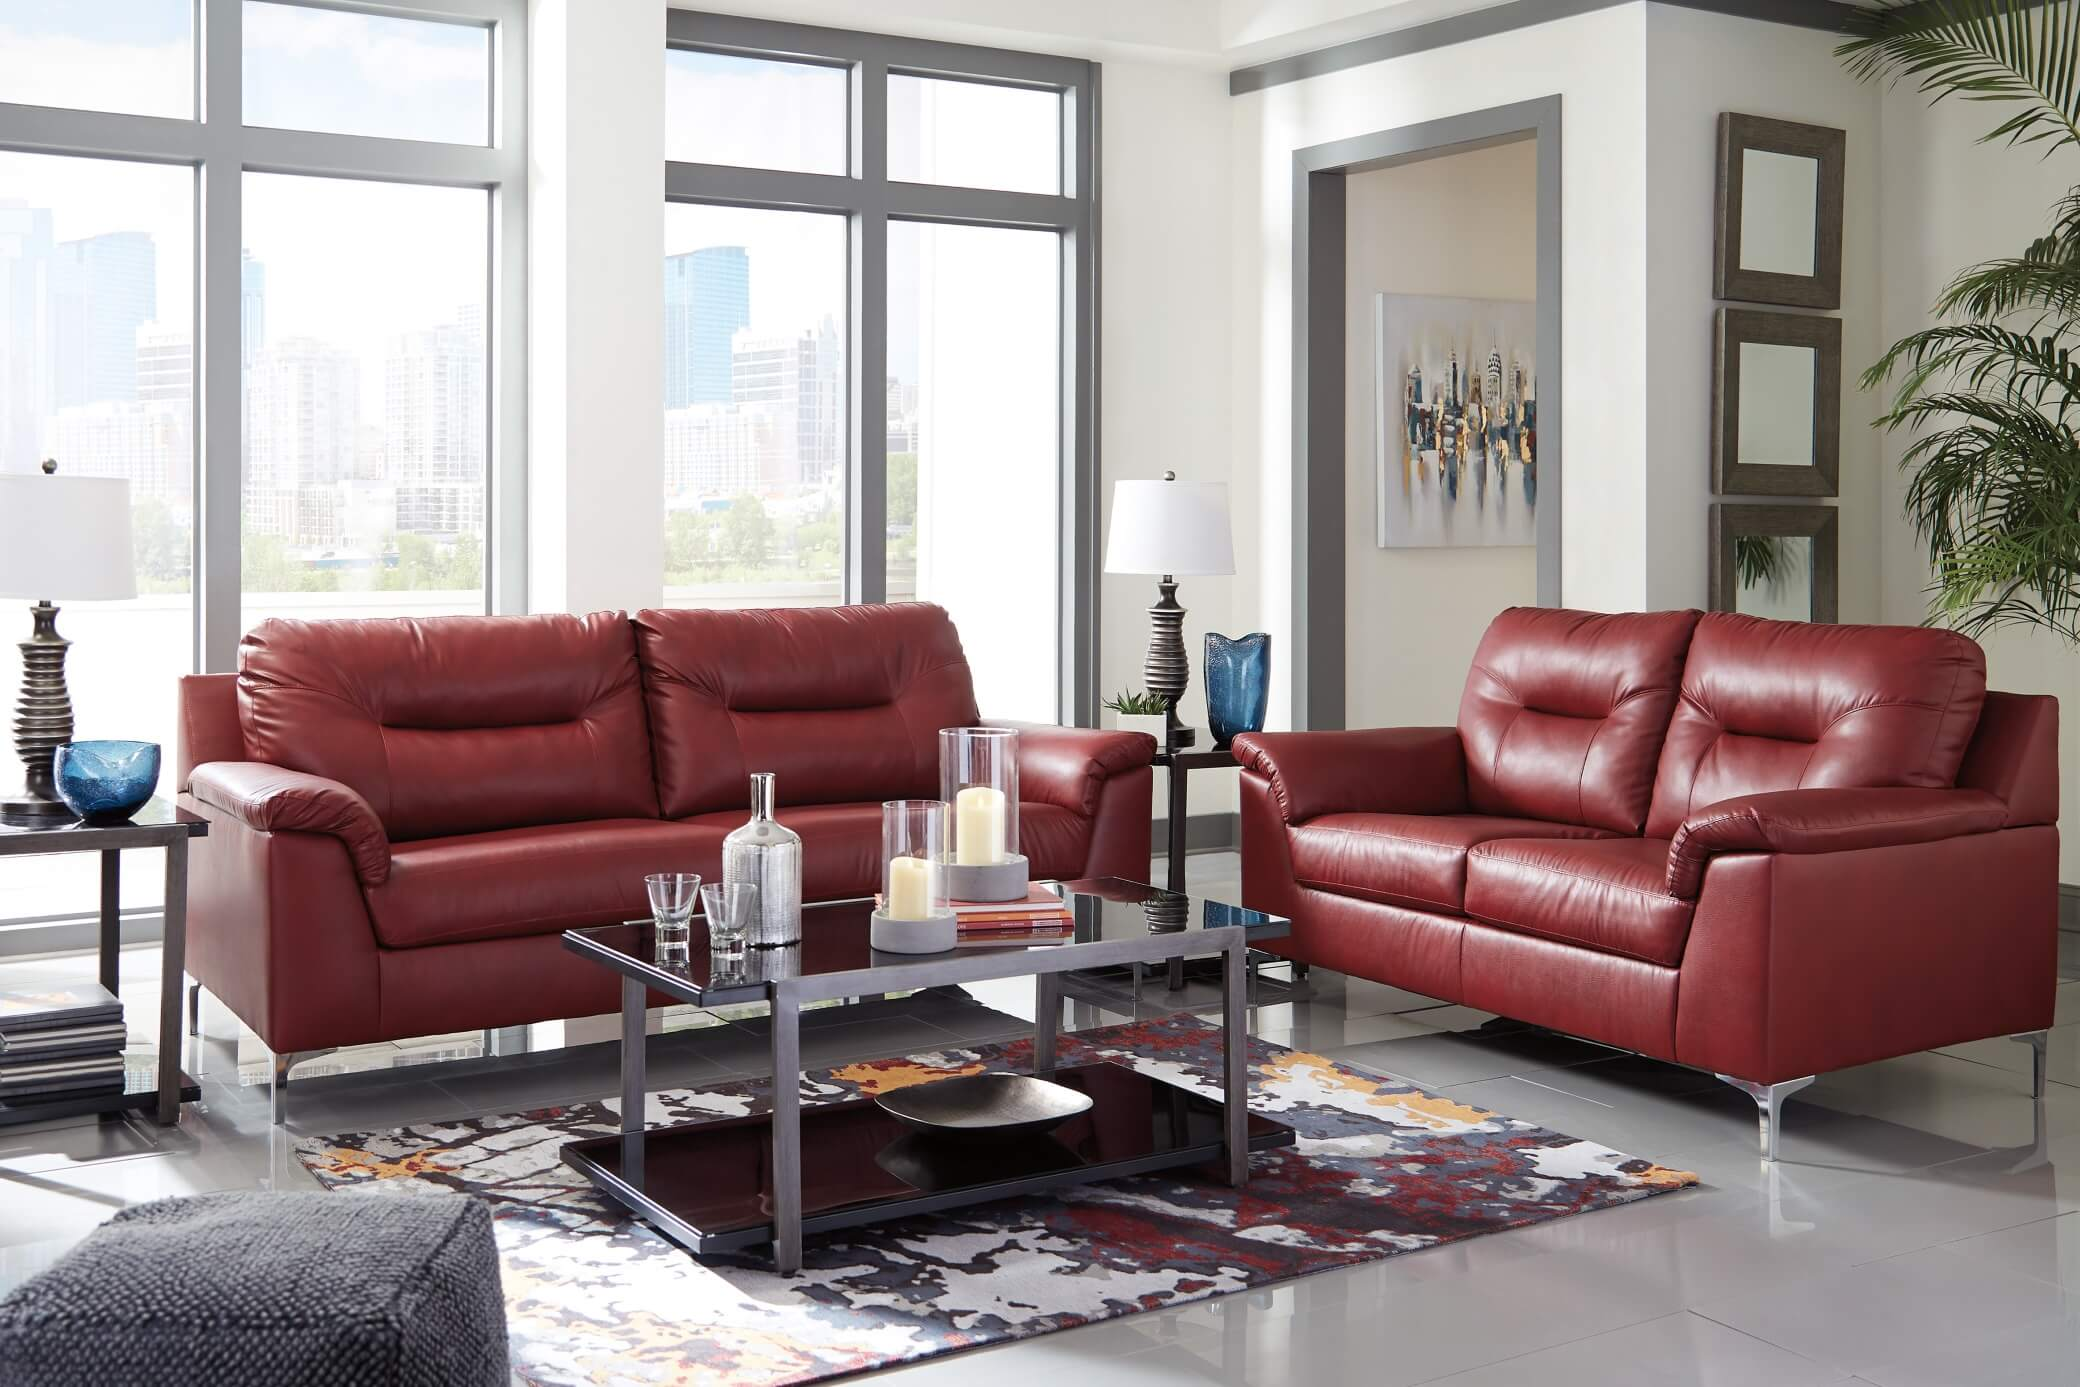 Contemporary Living Set 39603 Tensas Crimson Contemporary Living Room Set